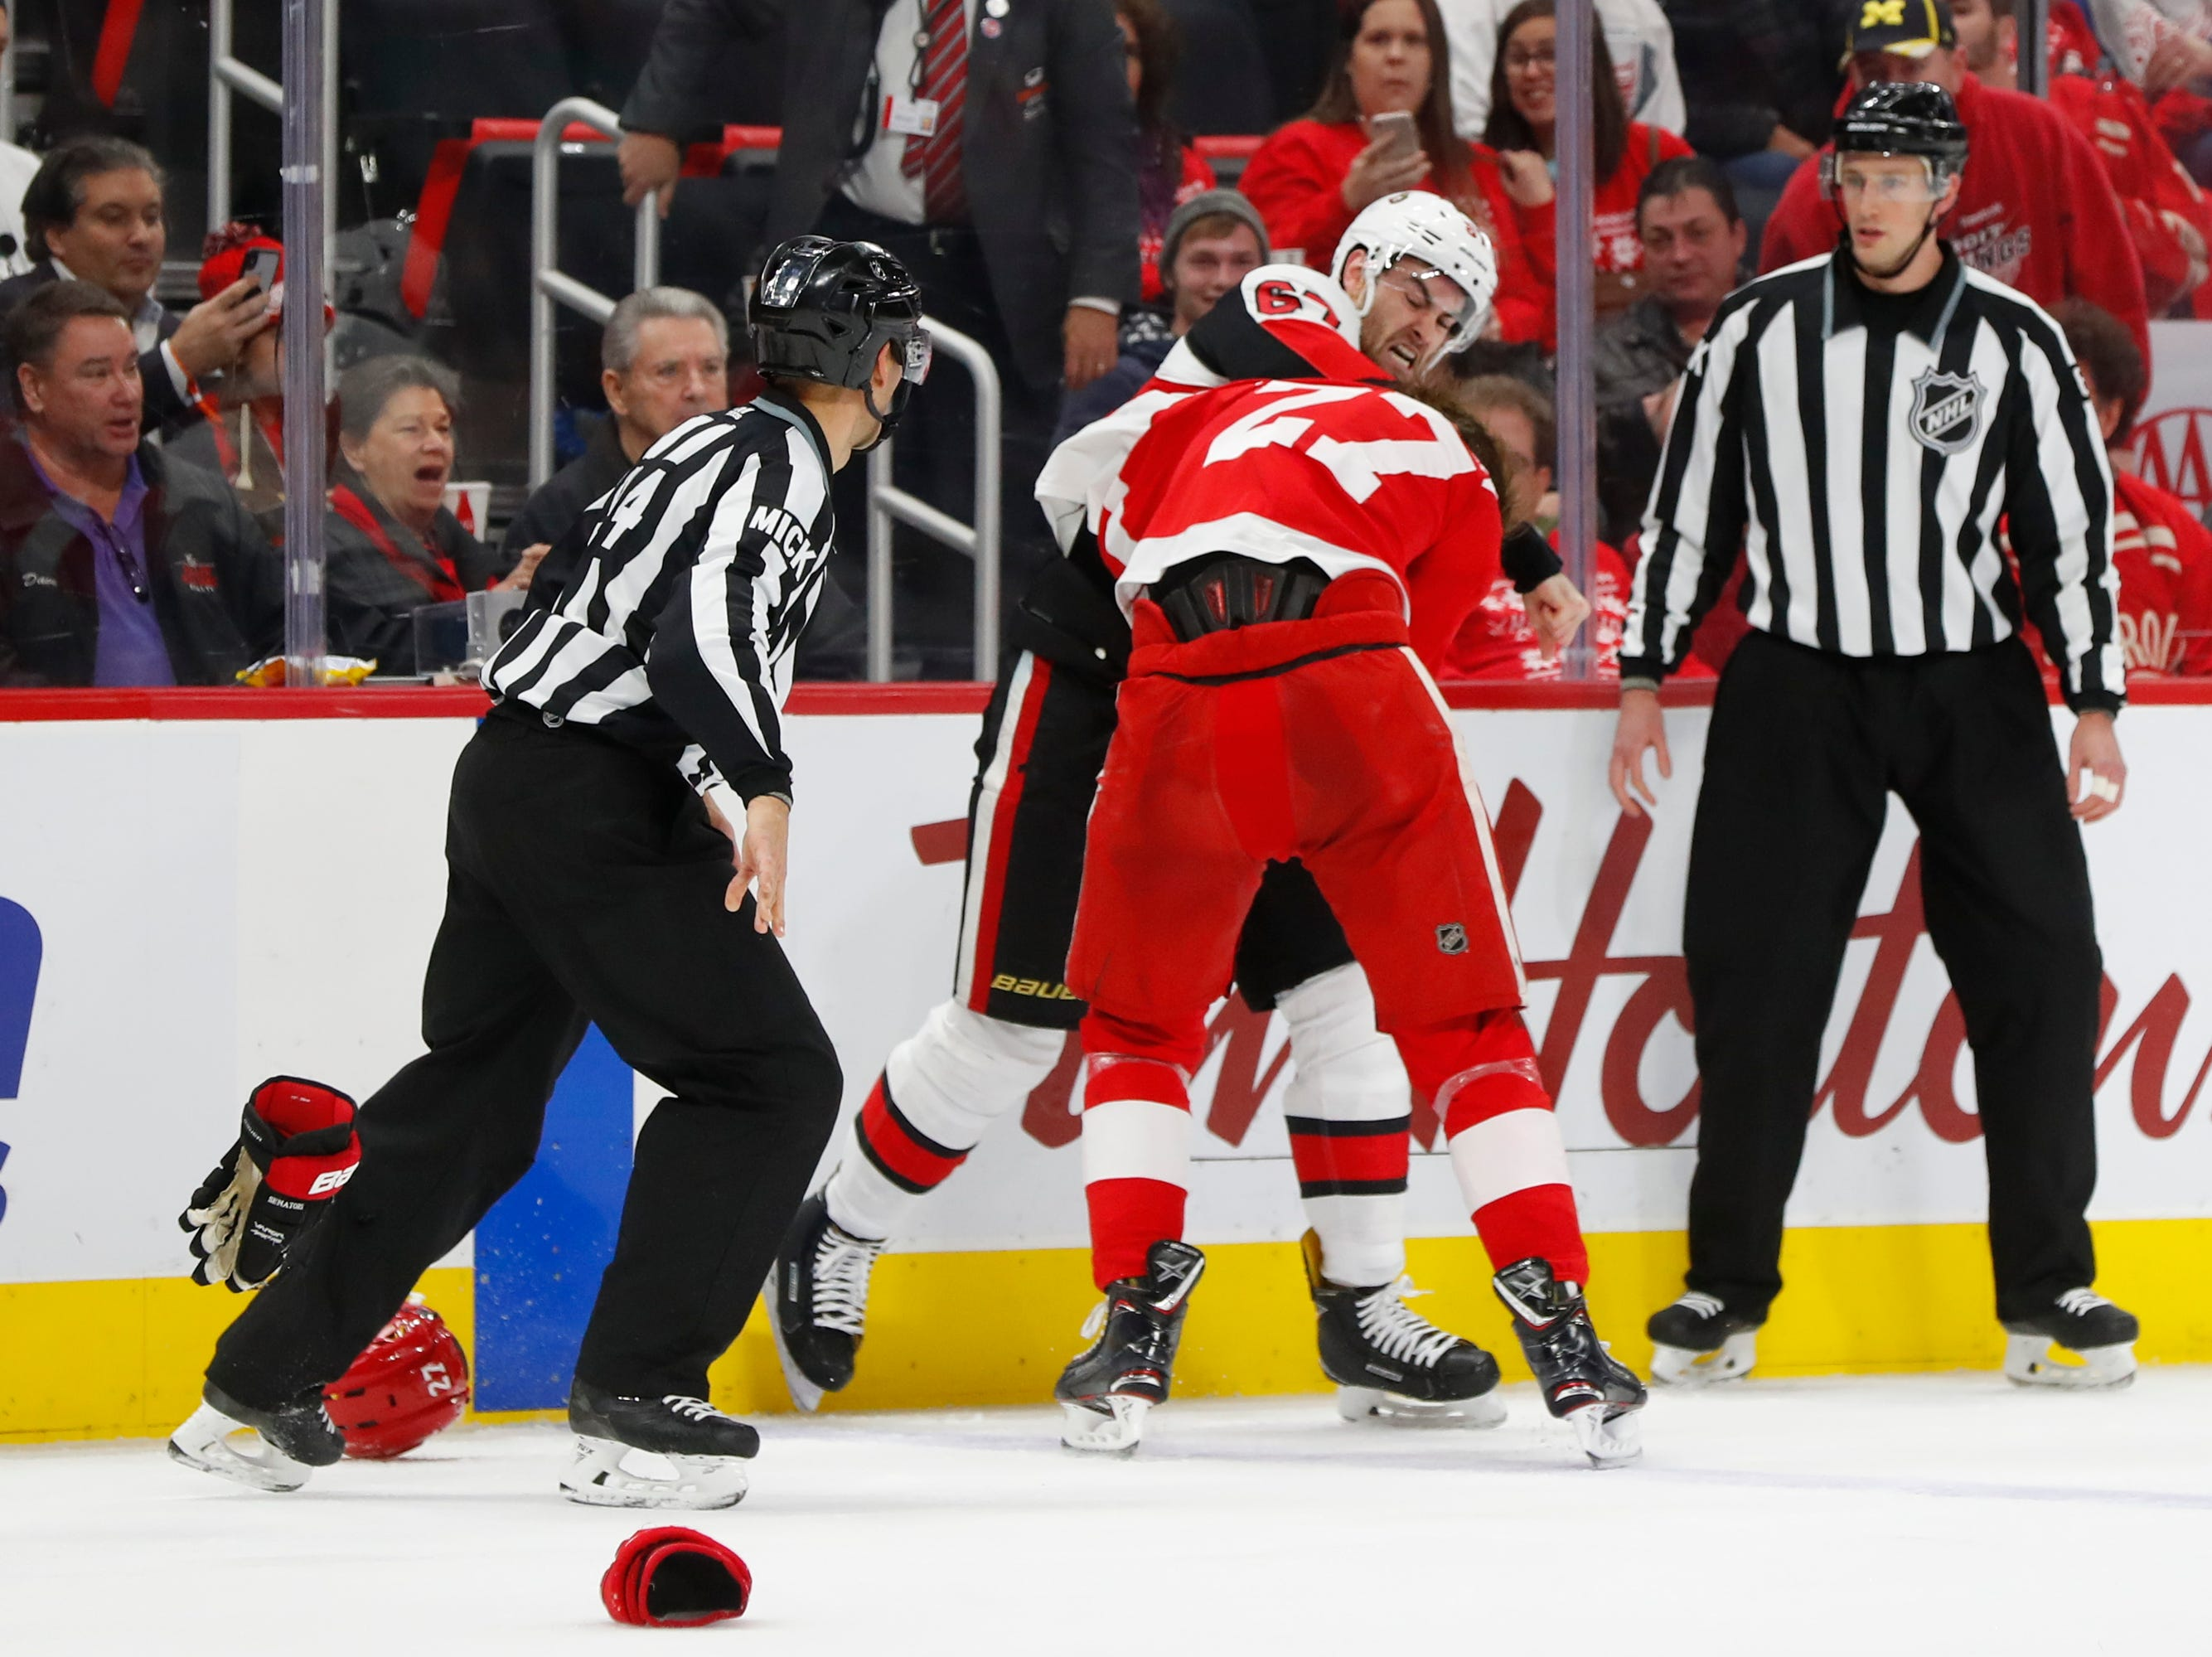 Dec. 14: Ottawa Senators' Ben Harpur vs. Detroit Red Wings' Michael Rasmussen.